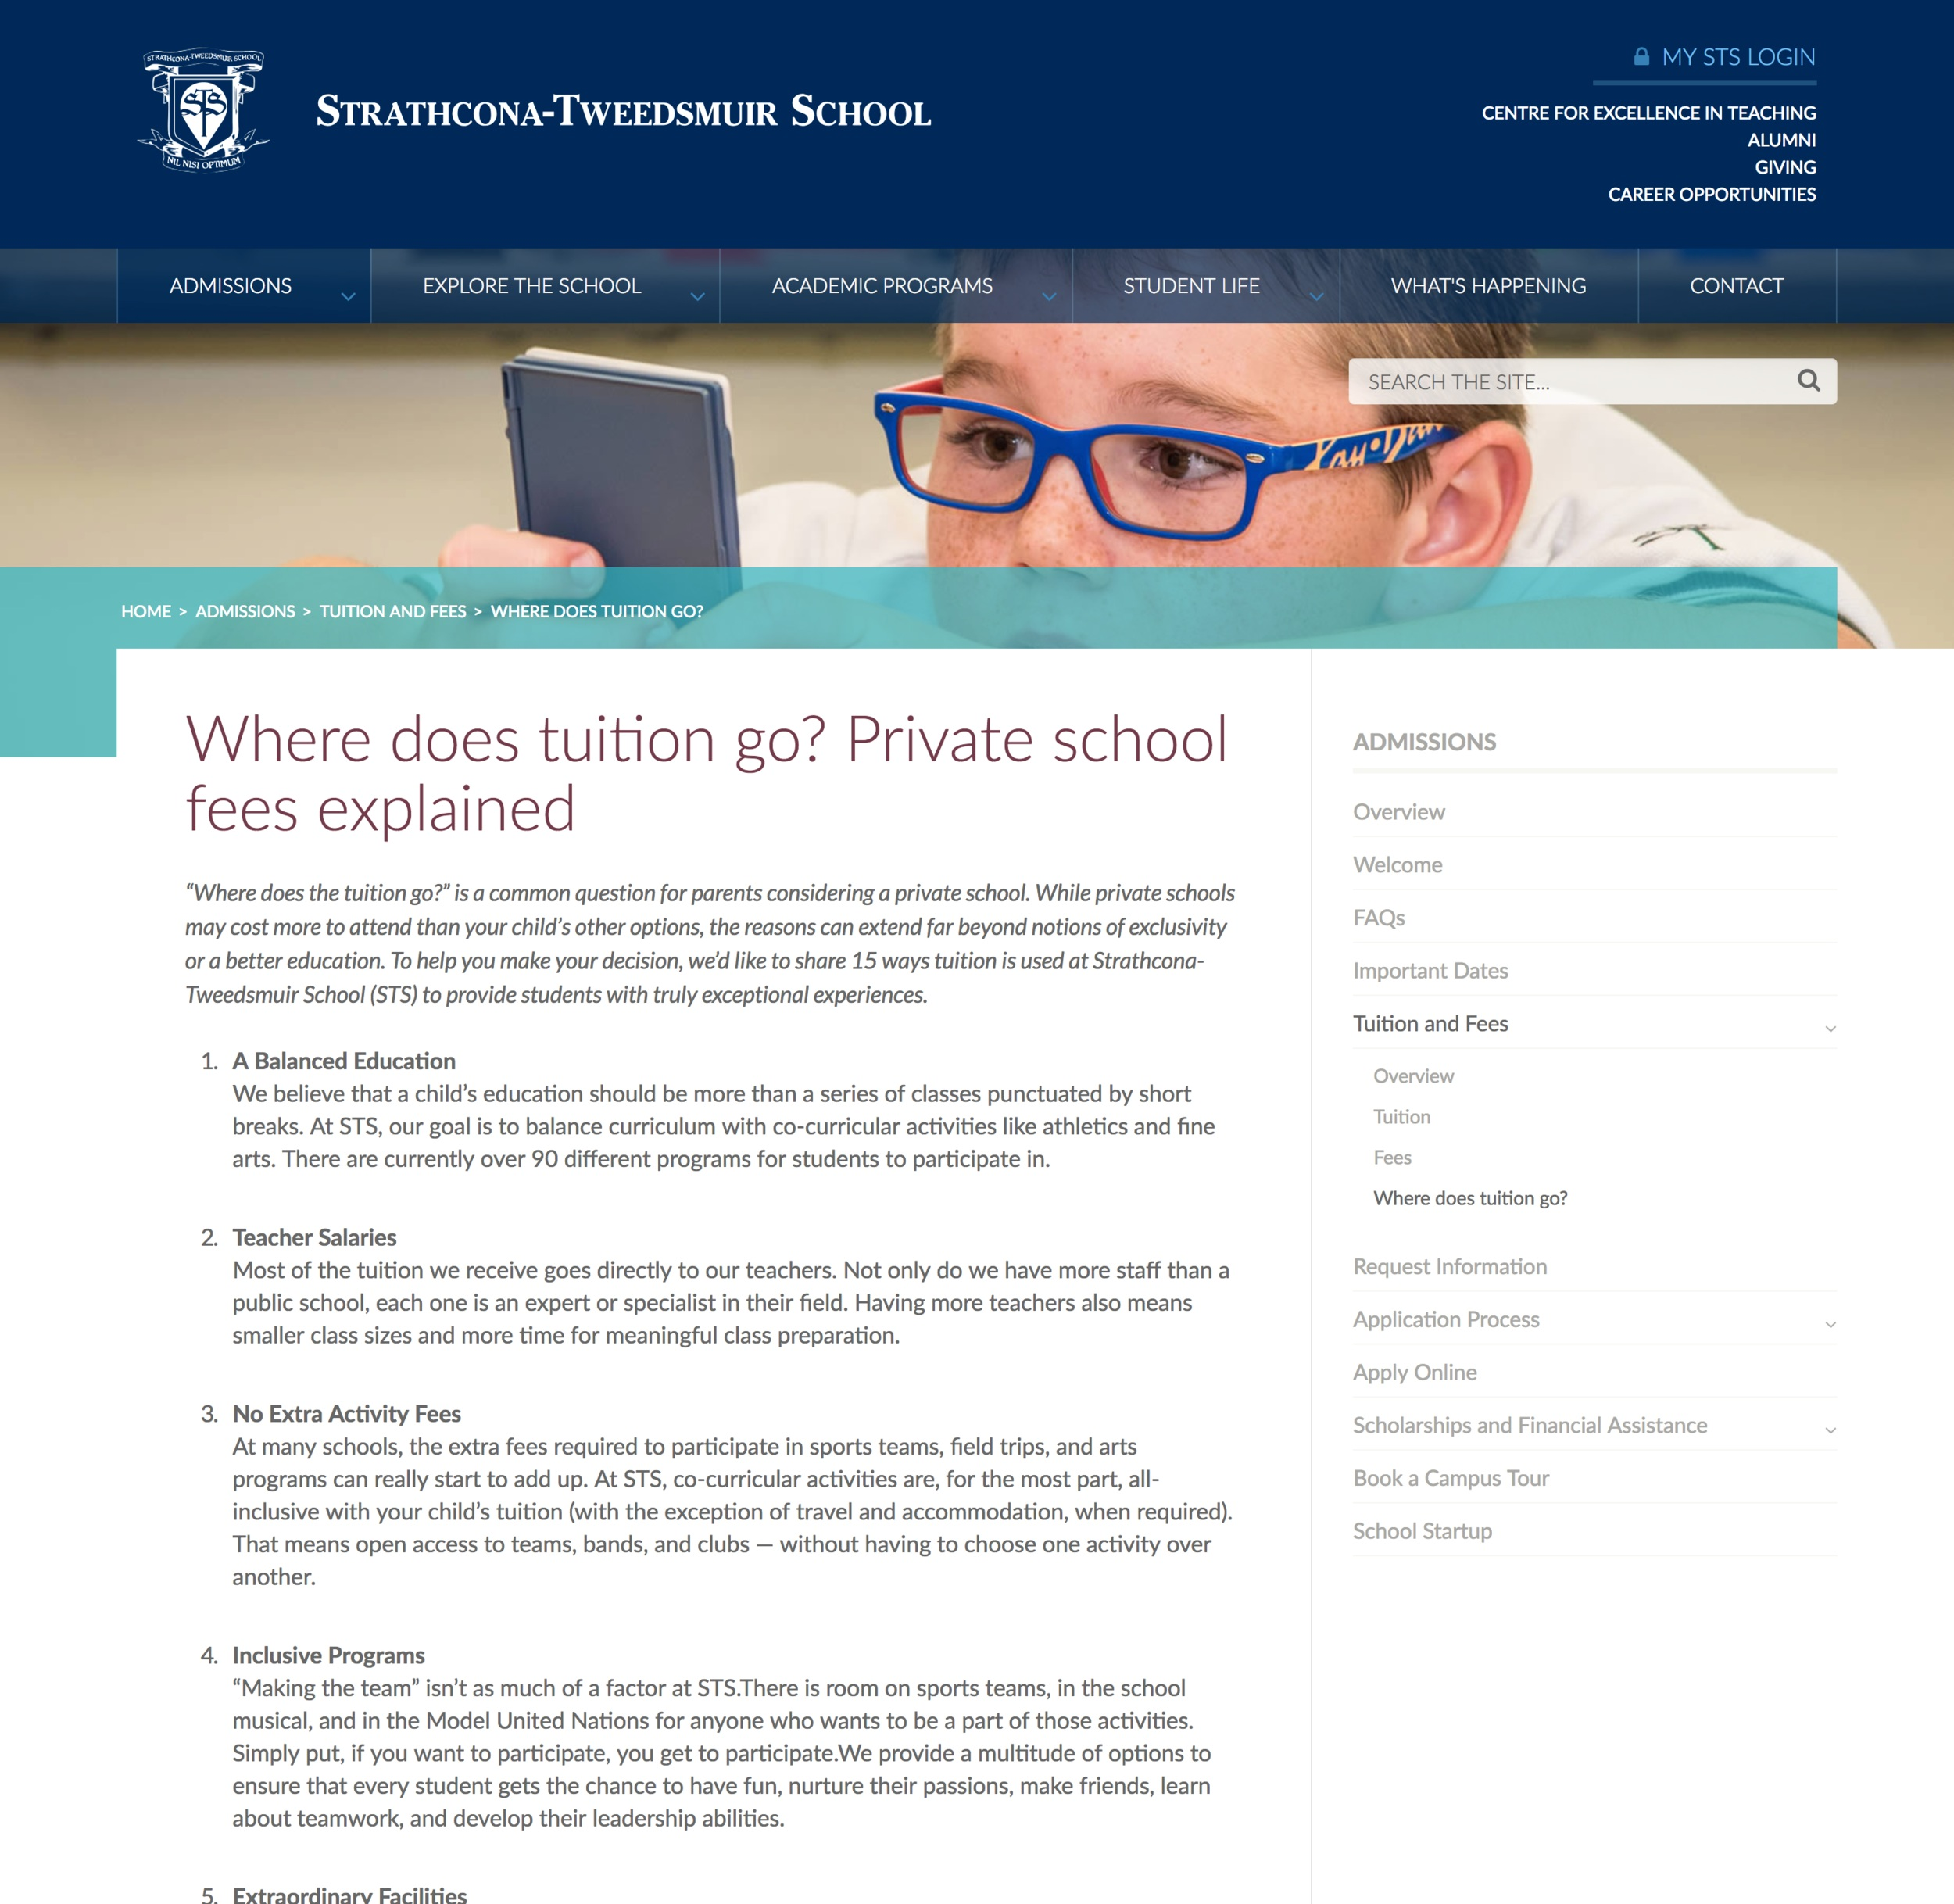 screencapture-strathconatweedsmuir-admissions-tuition-and-fees-private-school-fees-explained-2018-06-03-13_24_53.png